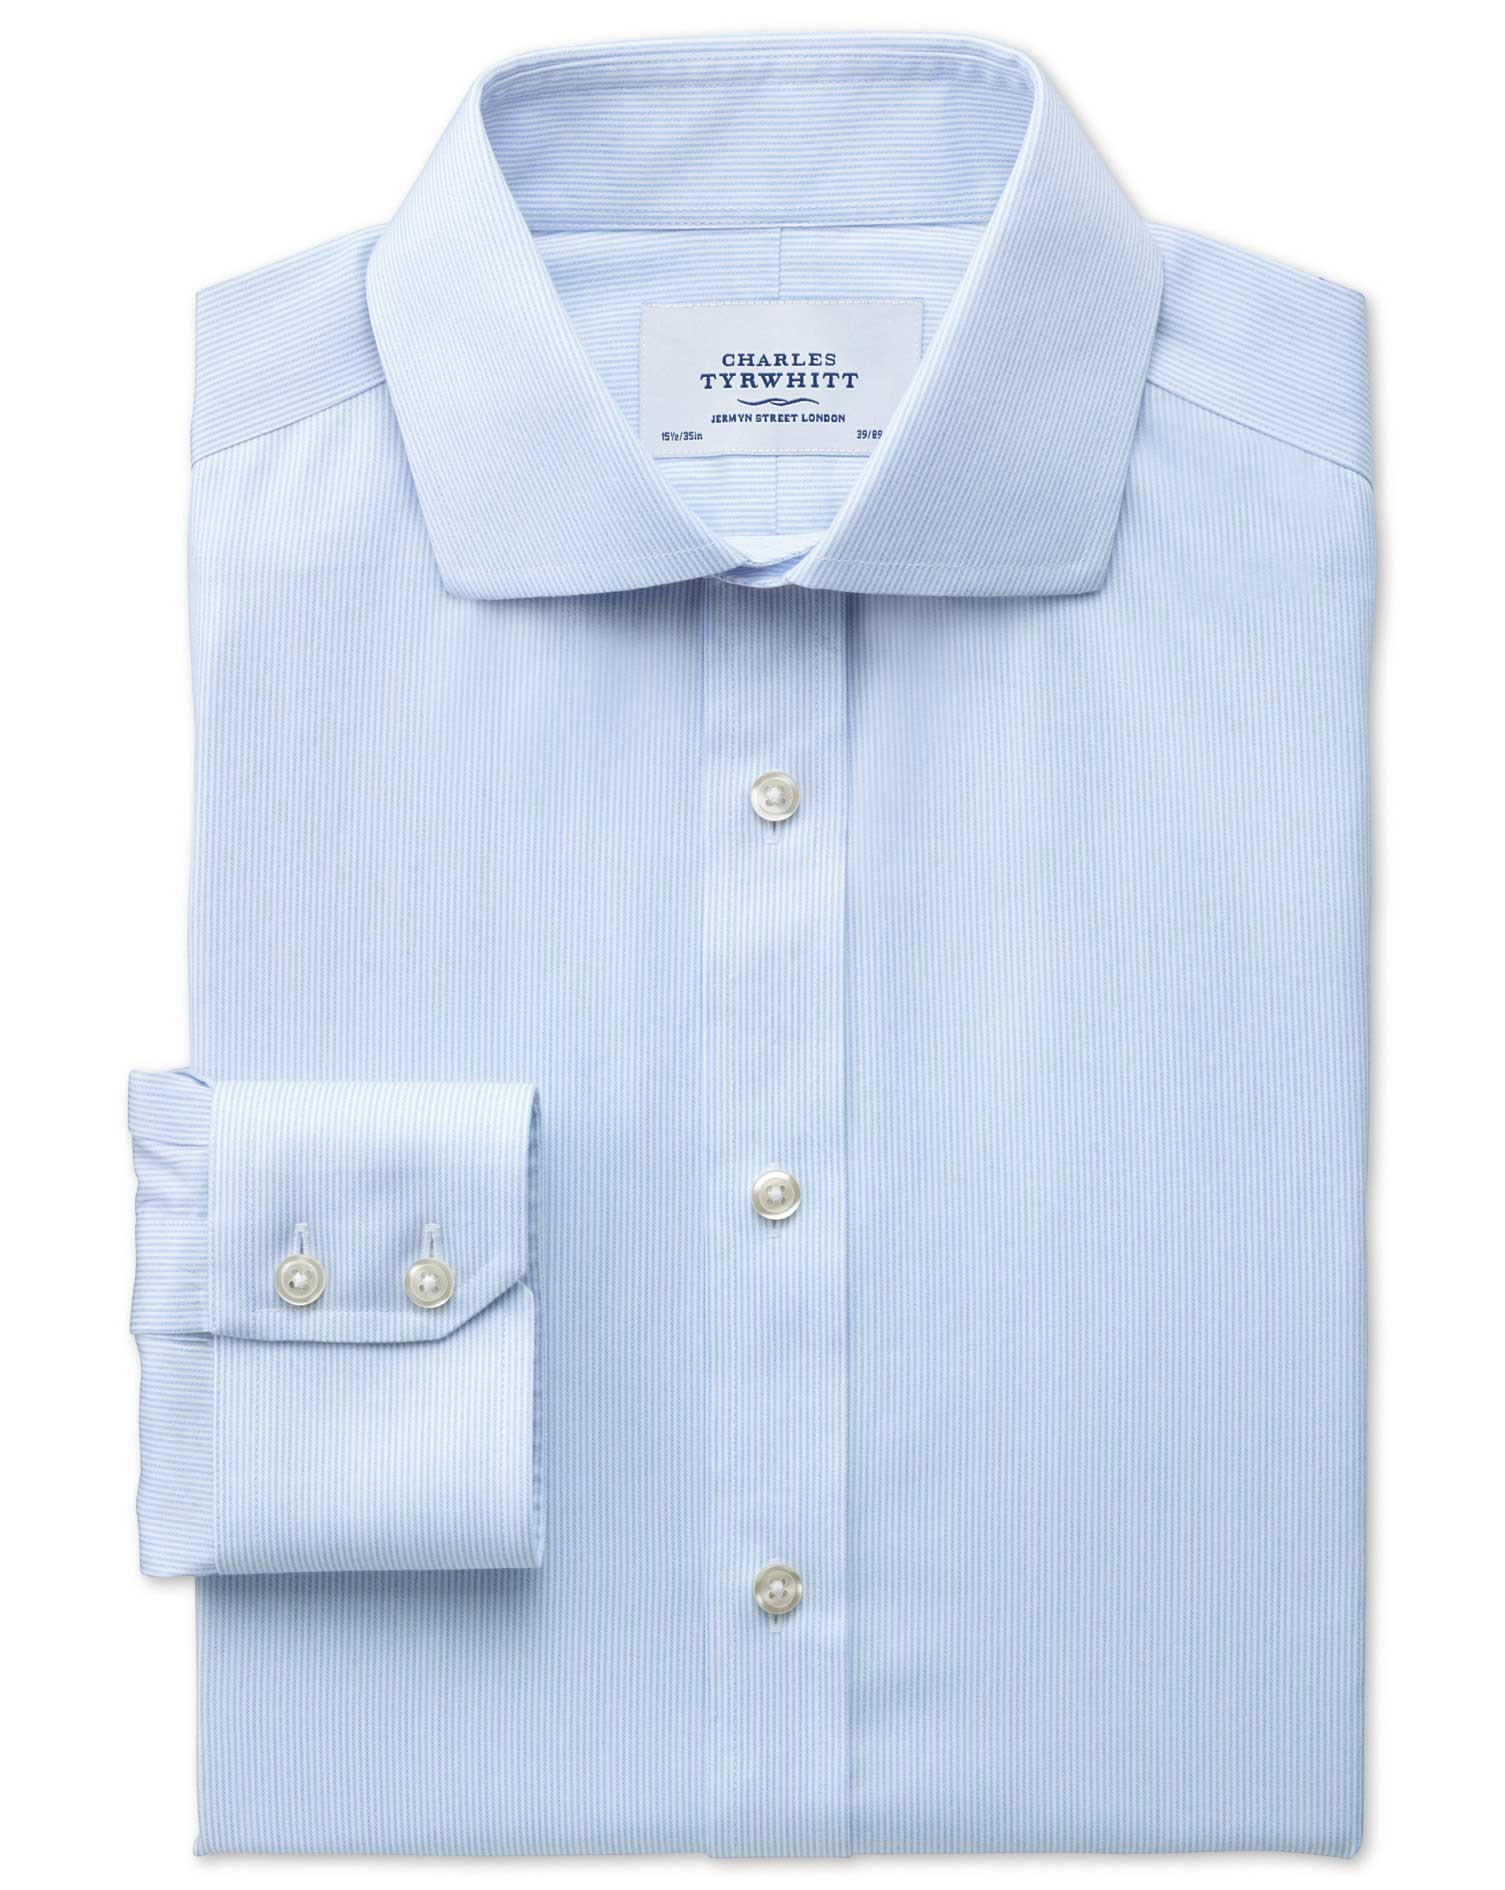 Slim Fit Cutaway Collar Non-Iron Mouline Stripe Sky Blue Cotton Formal Shirt Single Cuff Size 16/38